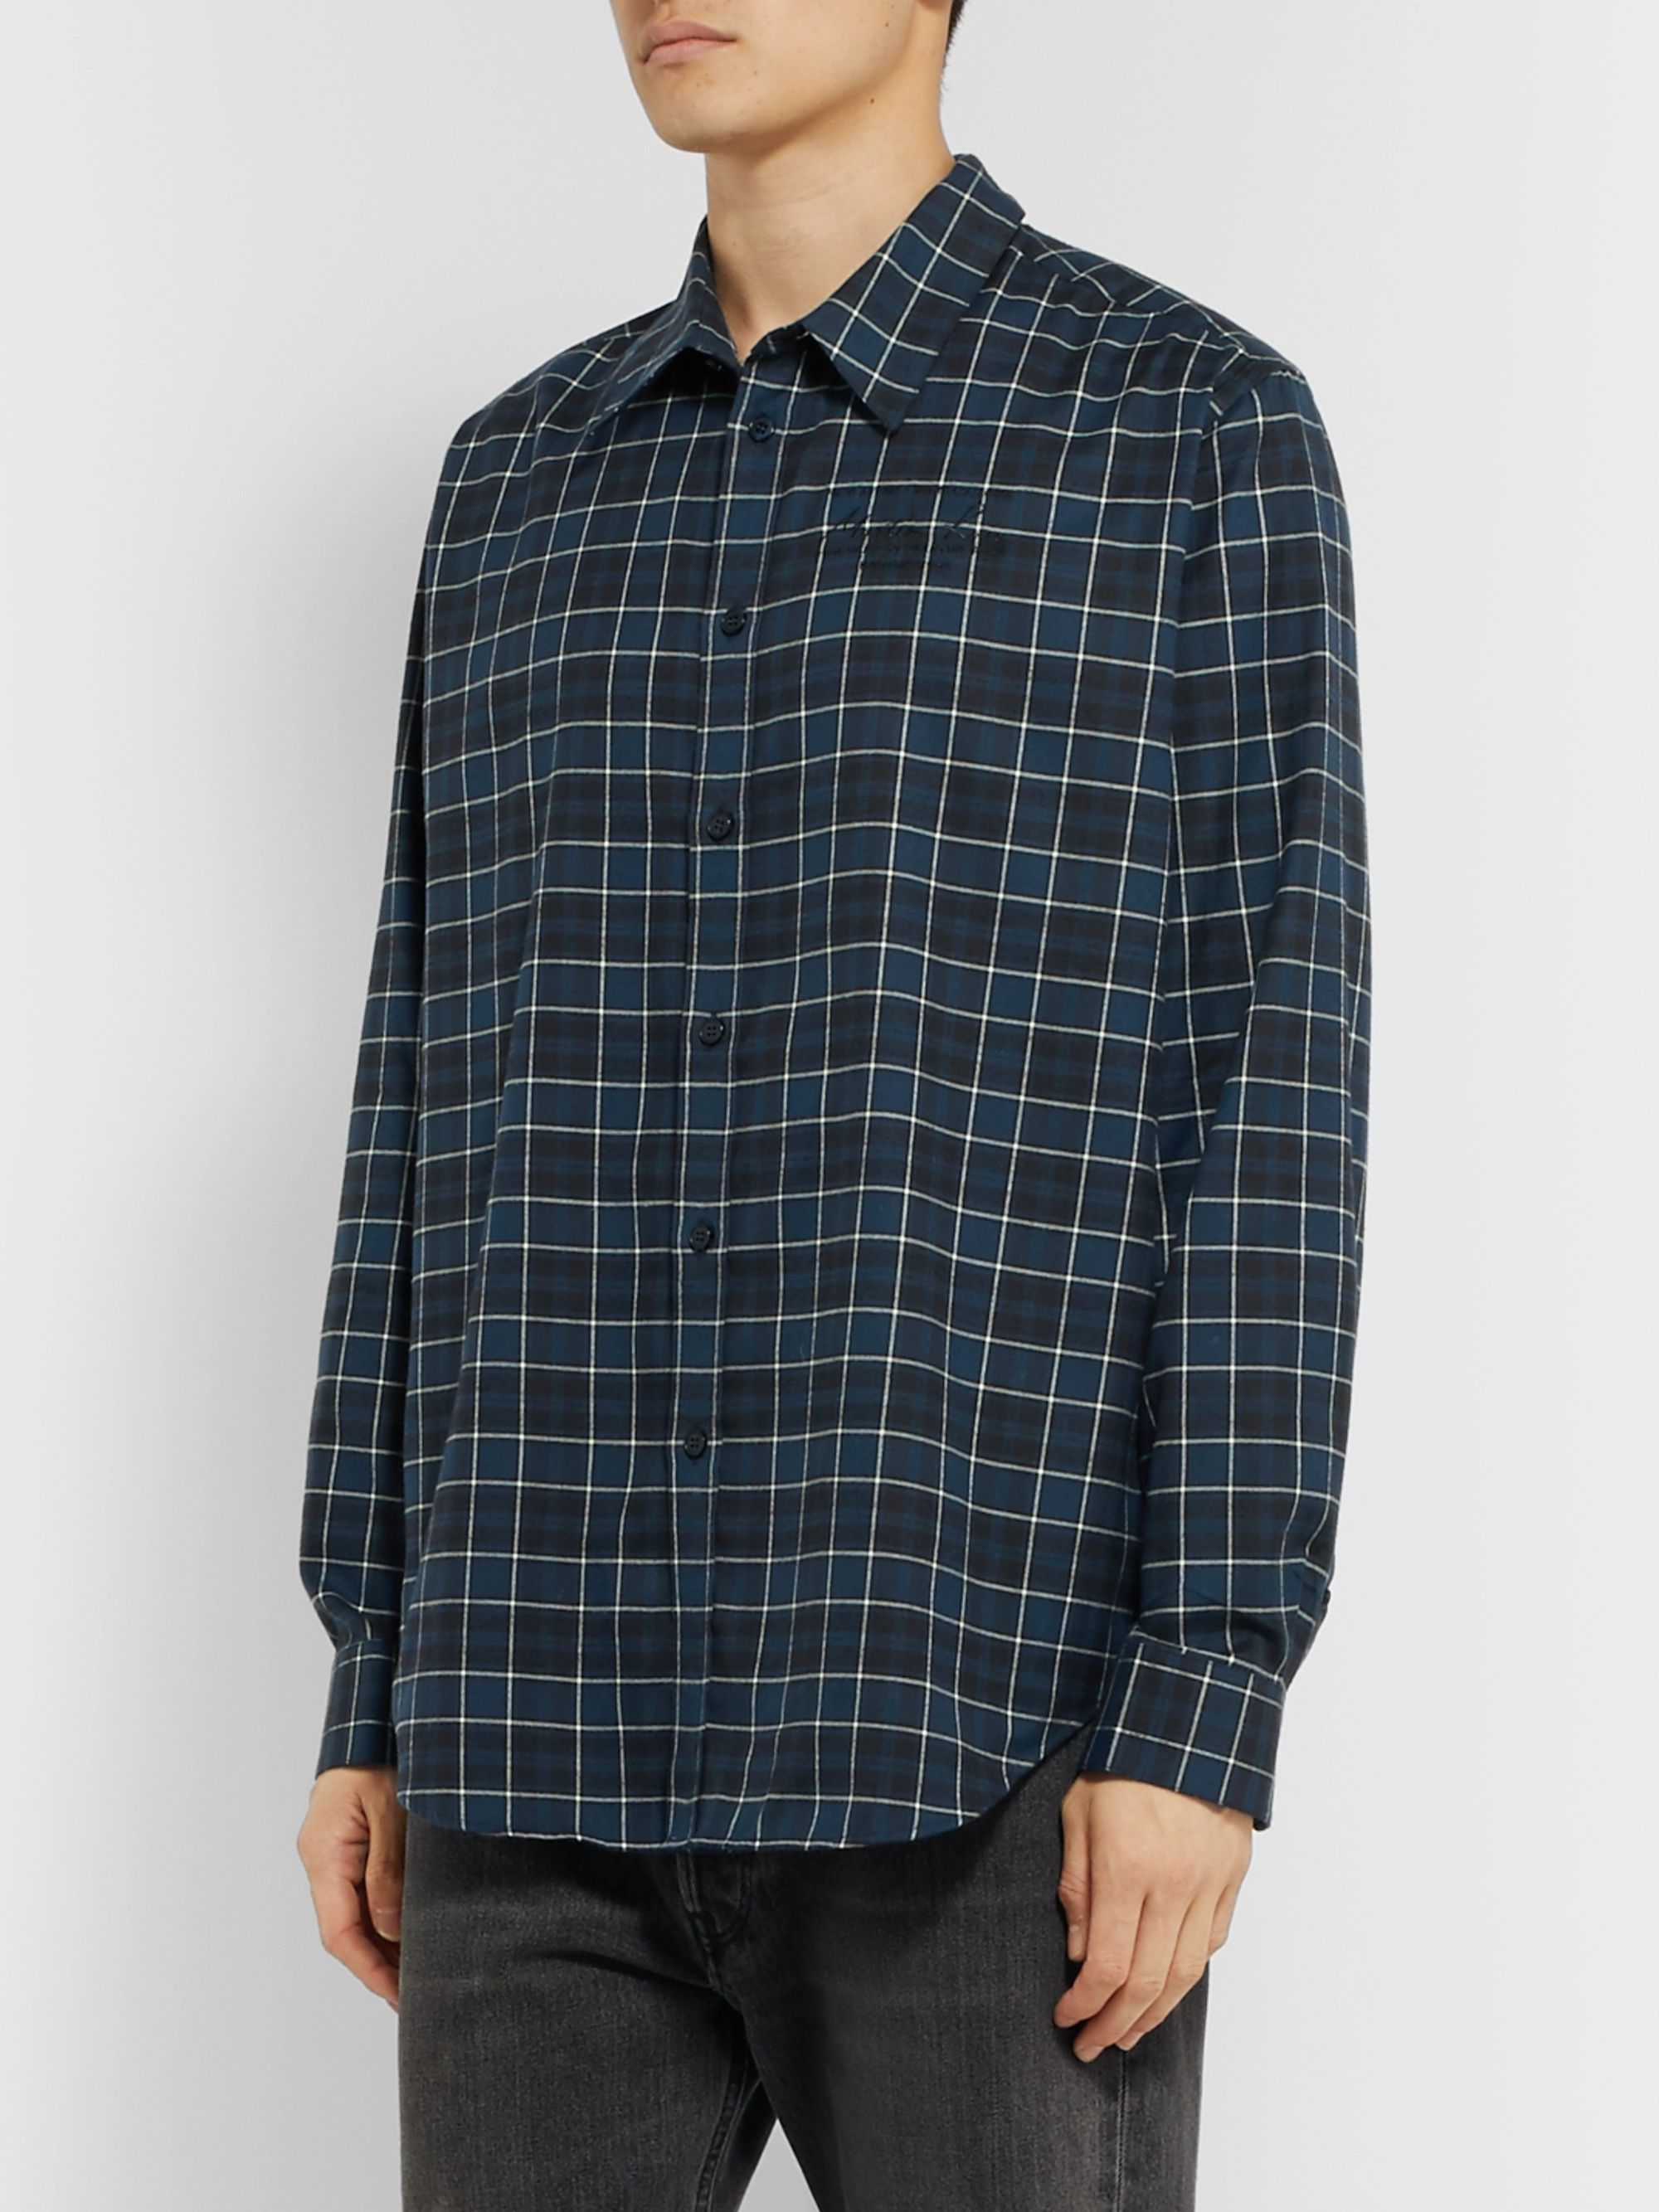 Martine Rose Checked Cotton-Flannel Shirt